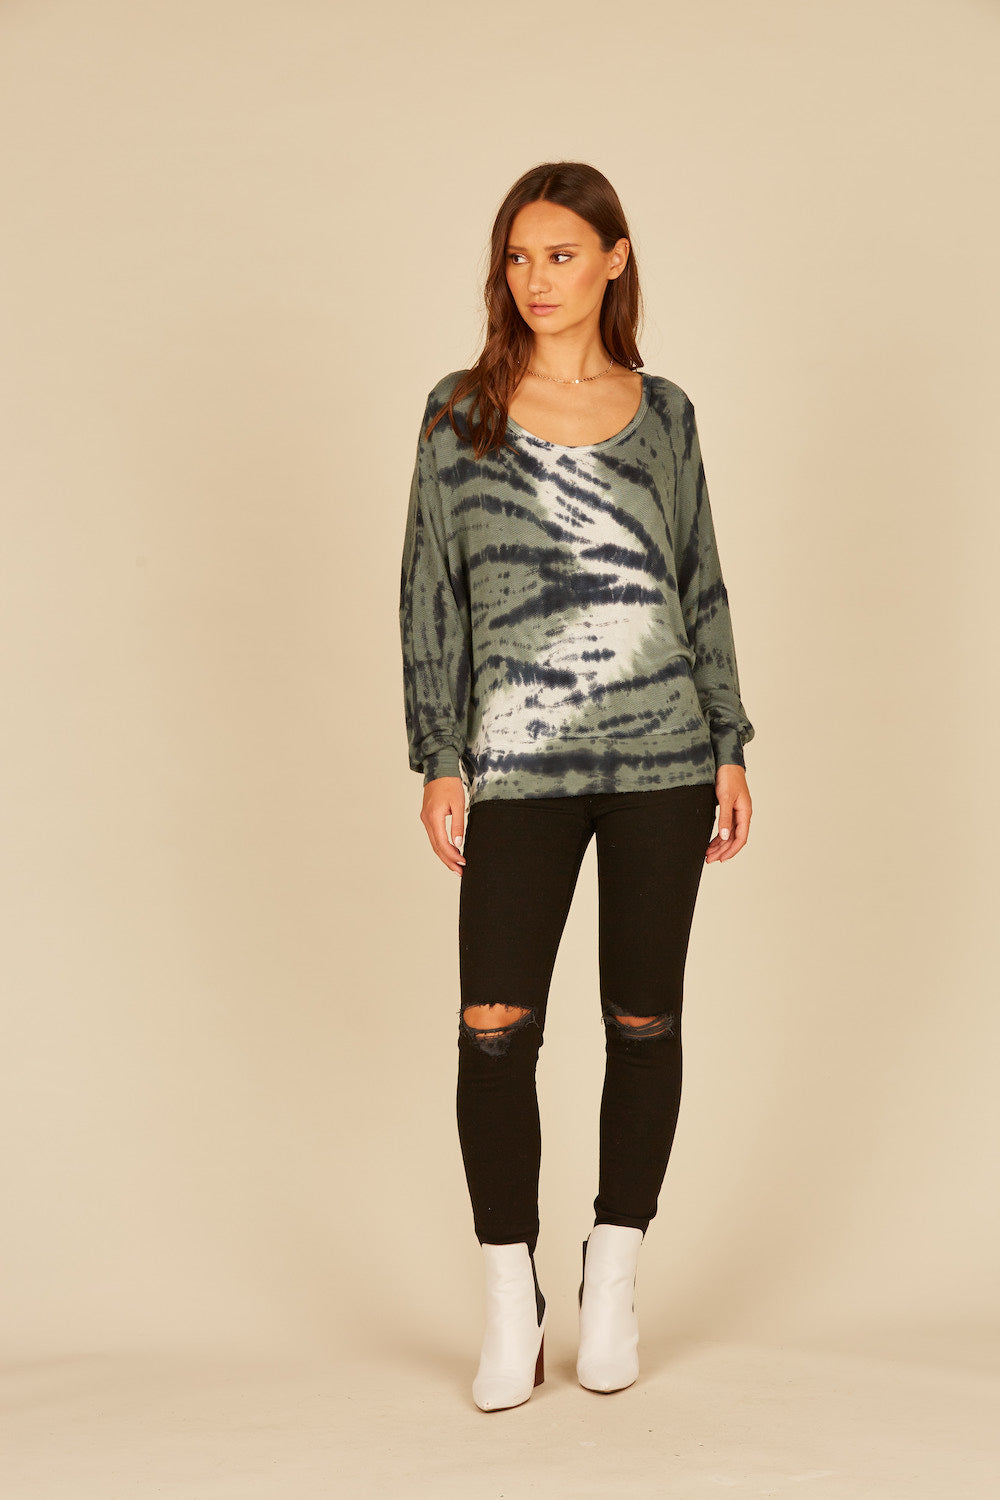 Olive/Slate/Ivory Loopy Terry Tie Dye Criss Cross Top